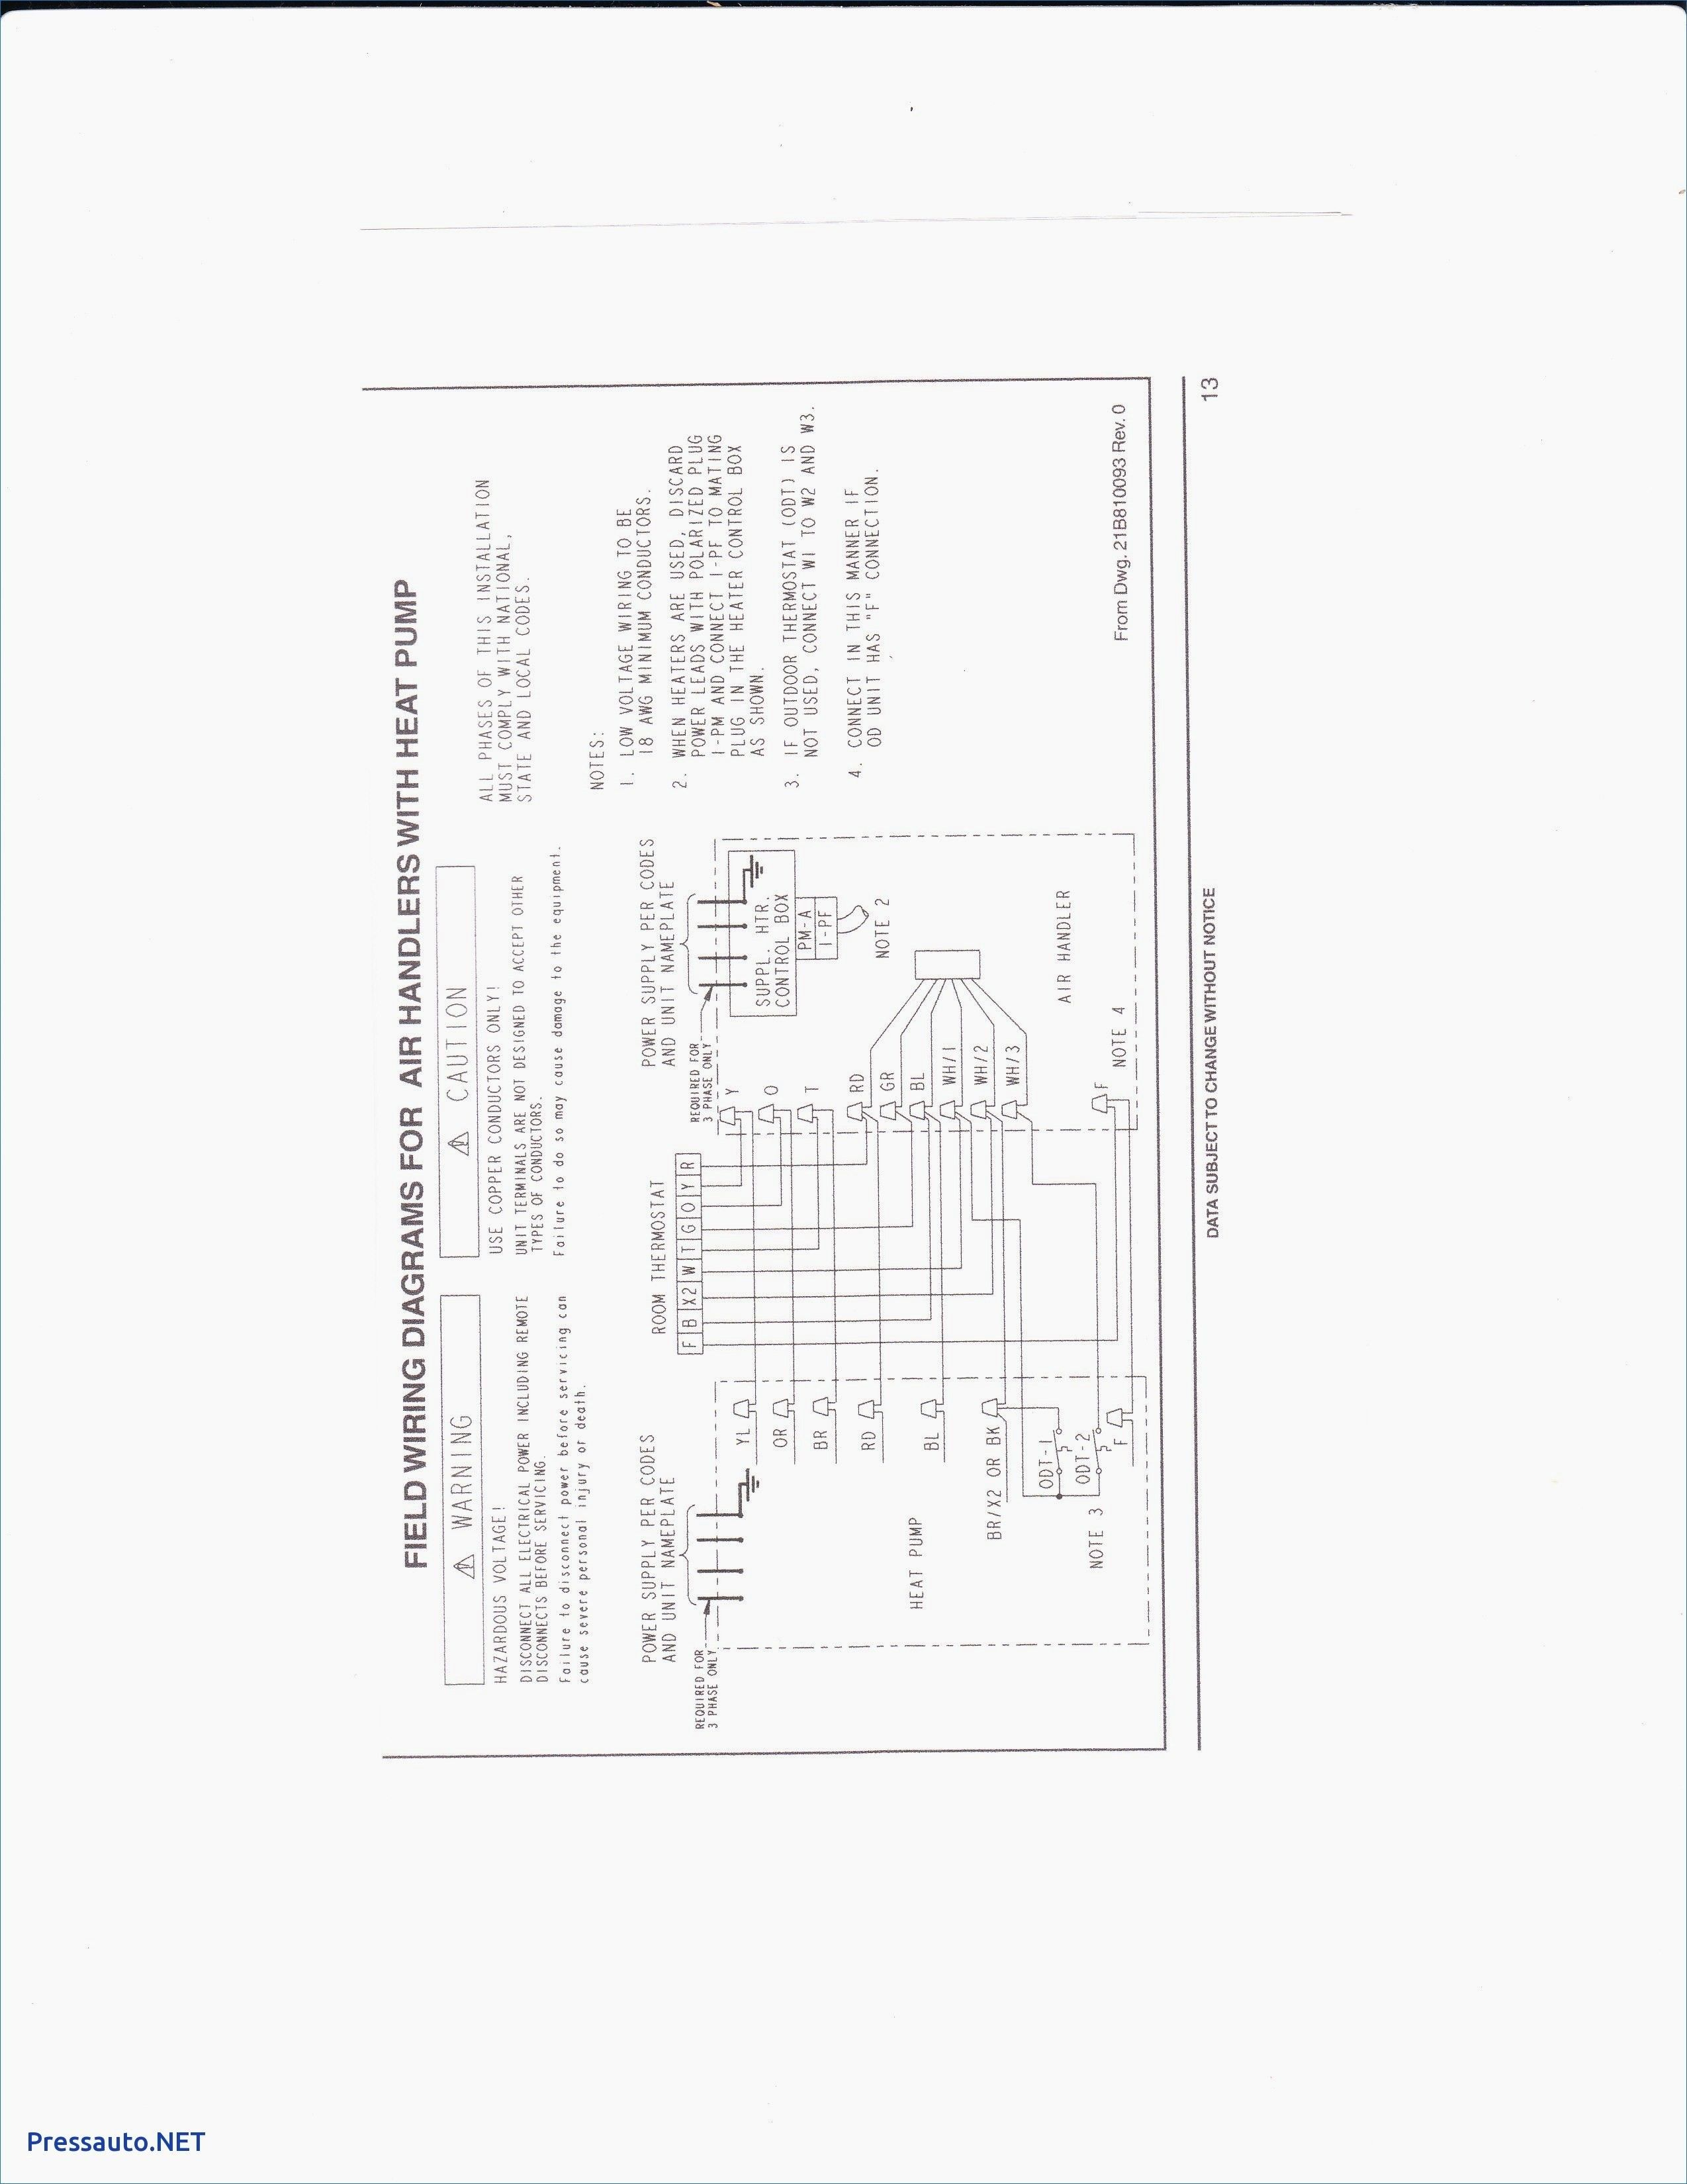 New Proform Electric Fan Wiring Diagram Diagram Diagramsample Diagramtemplate Wiringdiagram Diagramchar Thermostat Wiring Baseboard Heater Hvac Thermostat